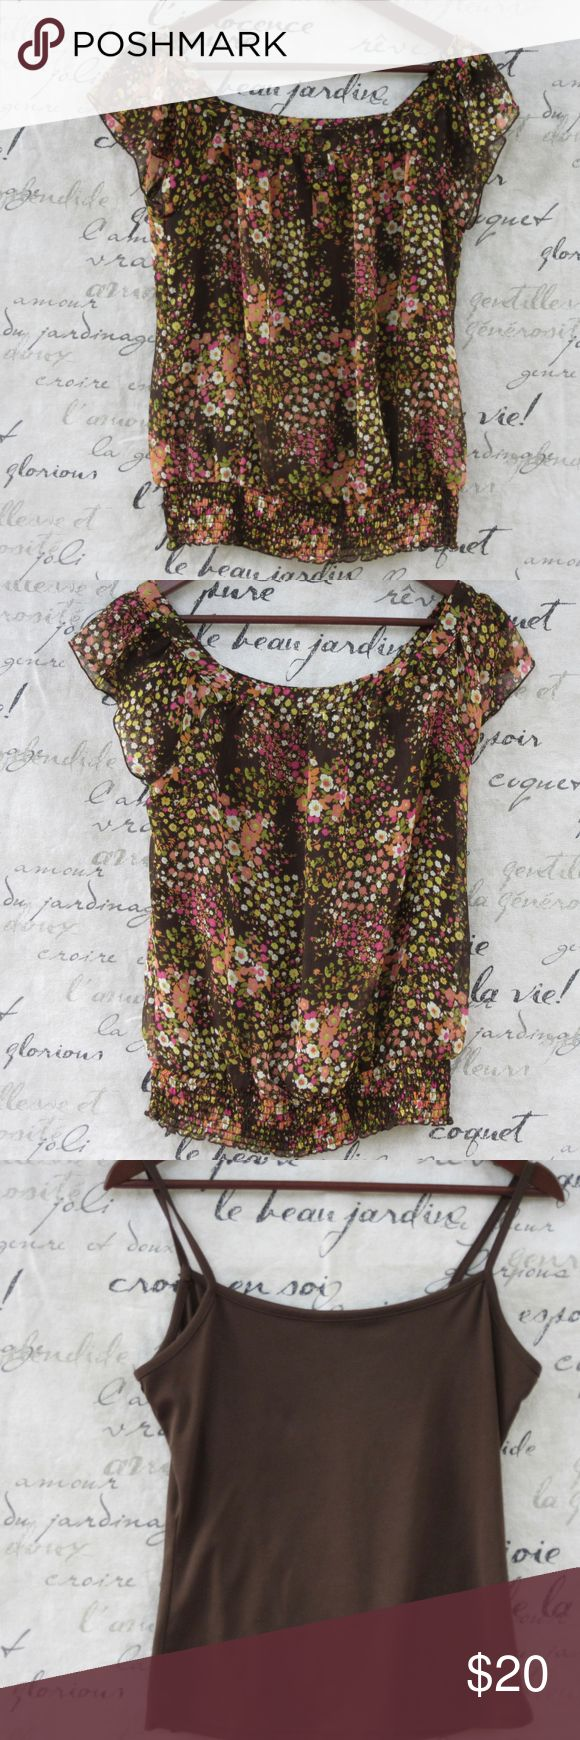 "A. Byer Brown Sheer Floral Top w/ Cami Brown with pink, white, and green flowers.  Square neckline, flutter sleeves, 4 decorative buttons in front (there is an extra one that comes with it).  The bottom is smocked.  Top comes with a brown cami.  Both are 100% polyester.  The cami is 18"" long from back to hem and 17"" across underarms.  The over blouse is 25"" long; 18"" across underarms.  EUC. A. Byer Tops Blouses"